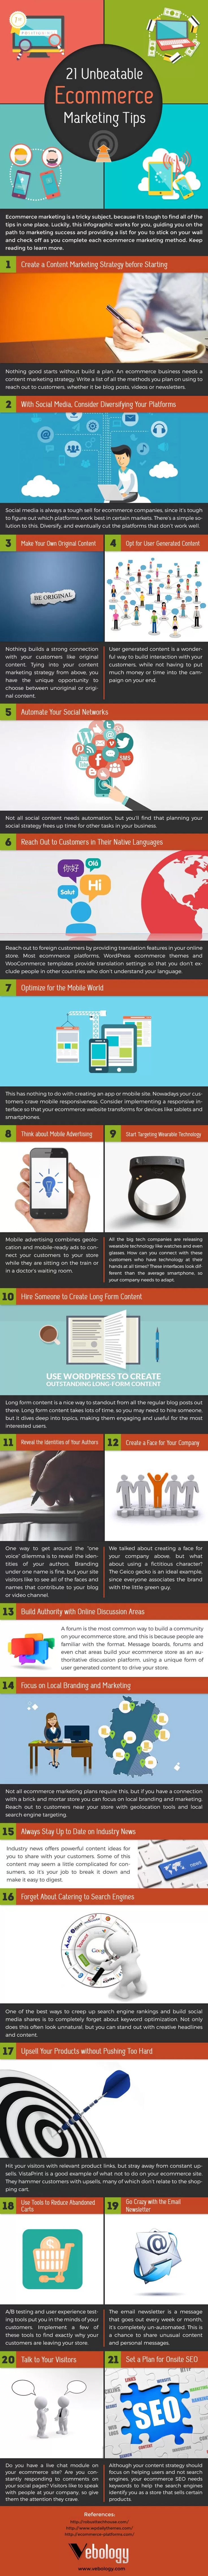 21 Unbeatable Ecommerce Marketing Tips to Generate More Online Sales [Infographic]